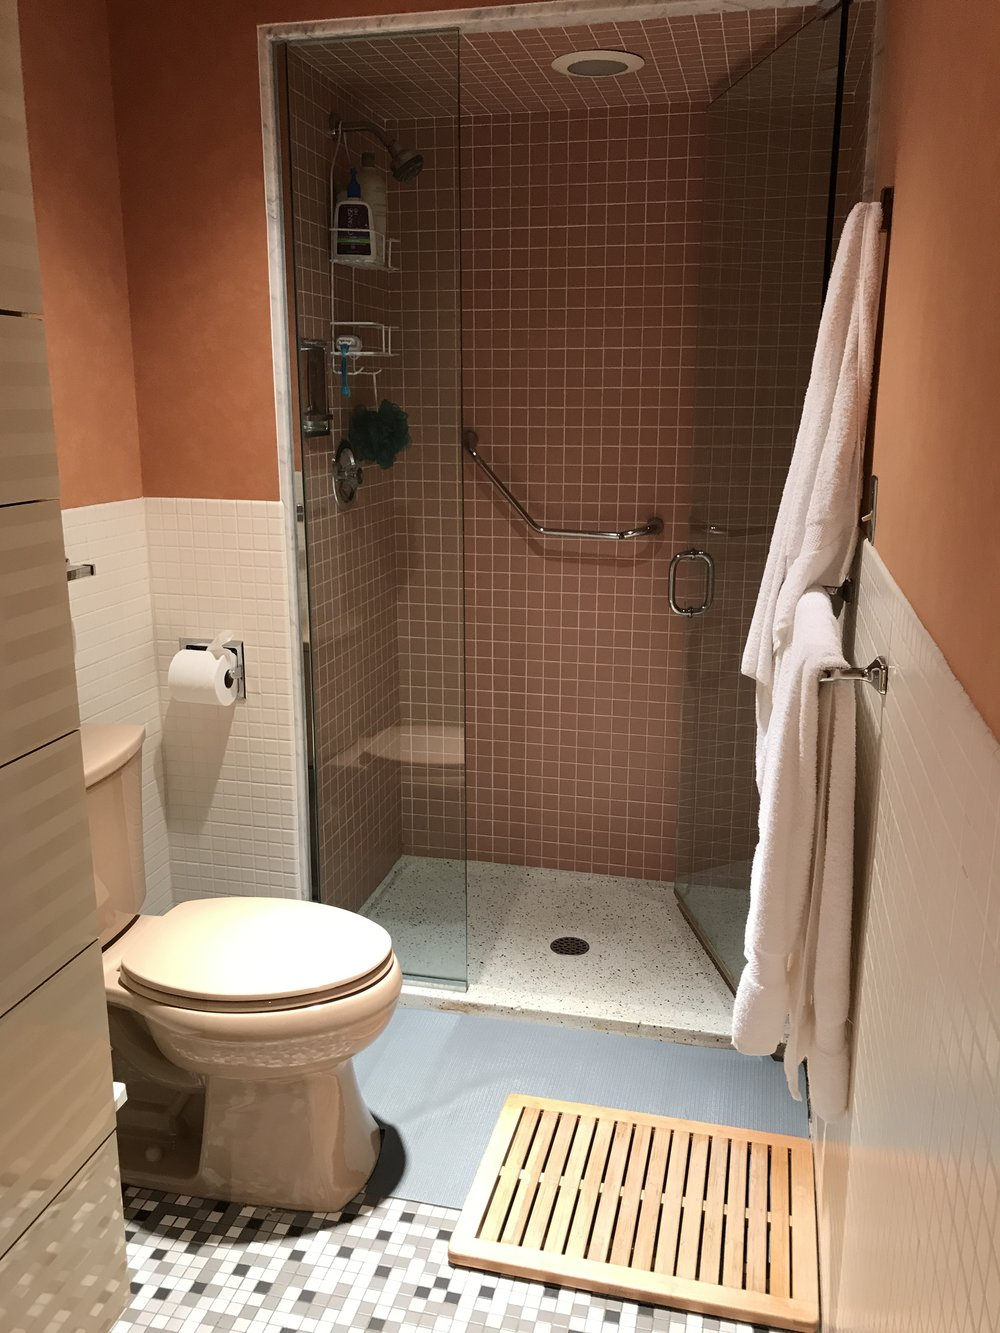 More peach goodness right here, along with different kinds of flooring (but no carpet?!),the small shower, and the mauve toilet.